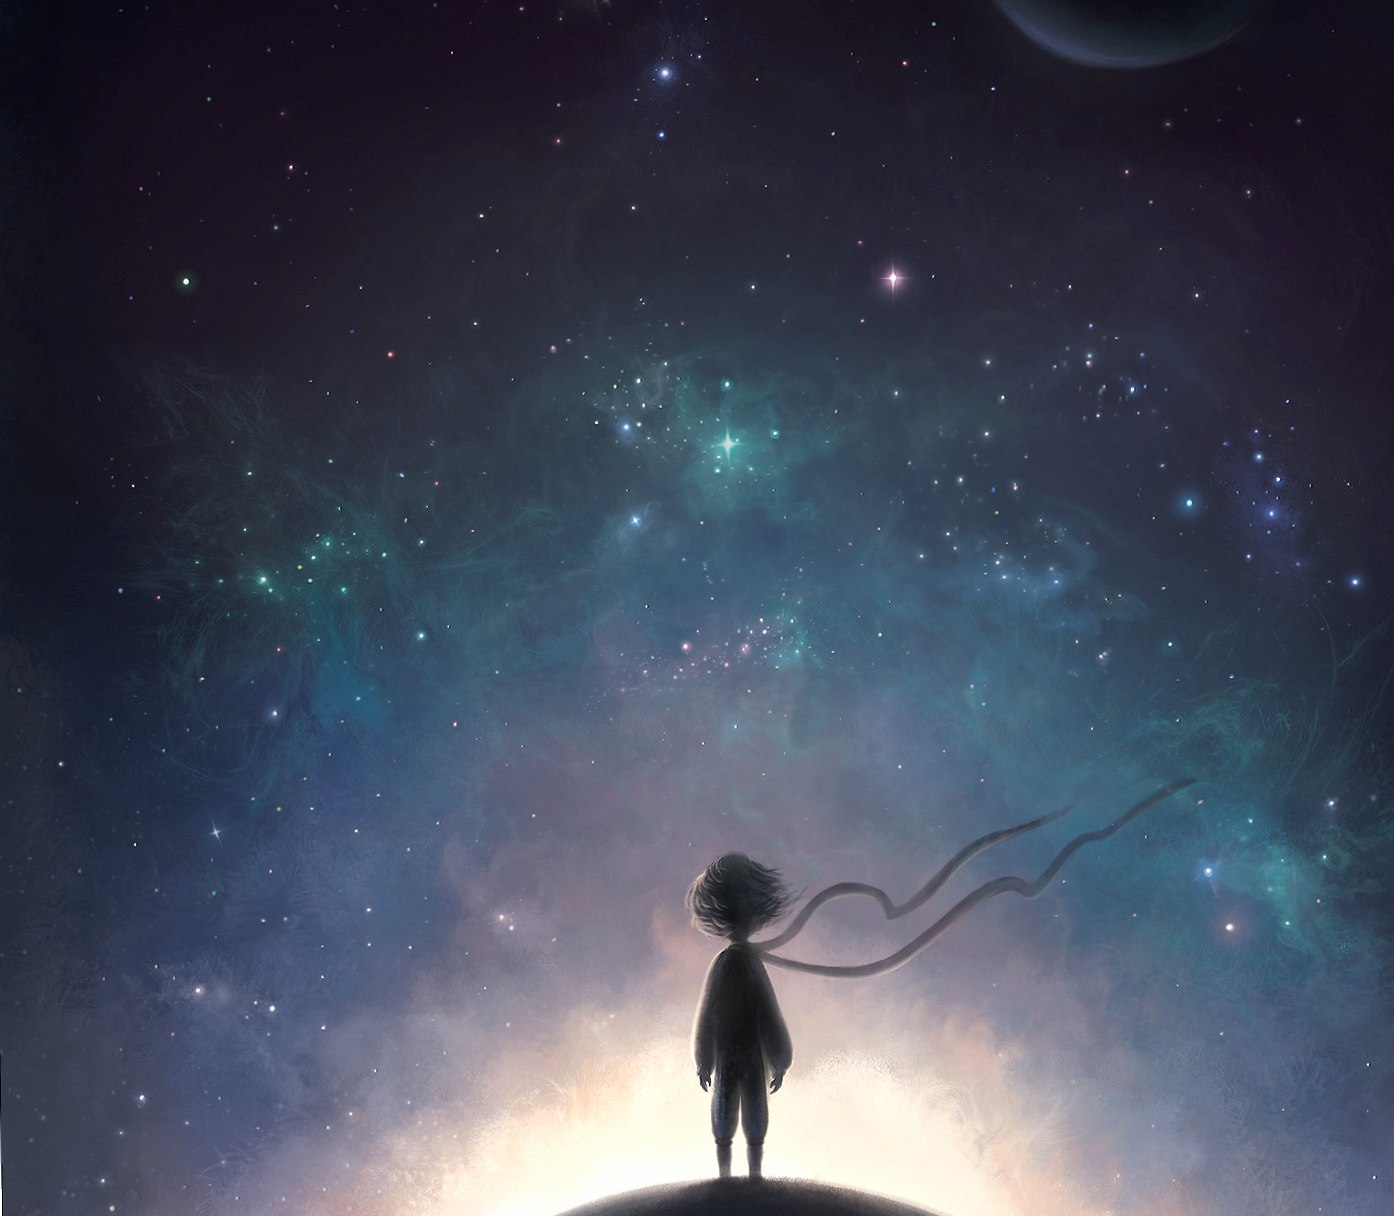 Little prince wallpapers HD quality